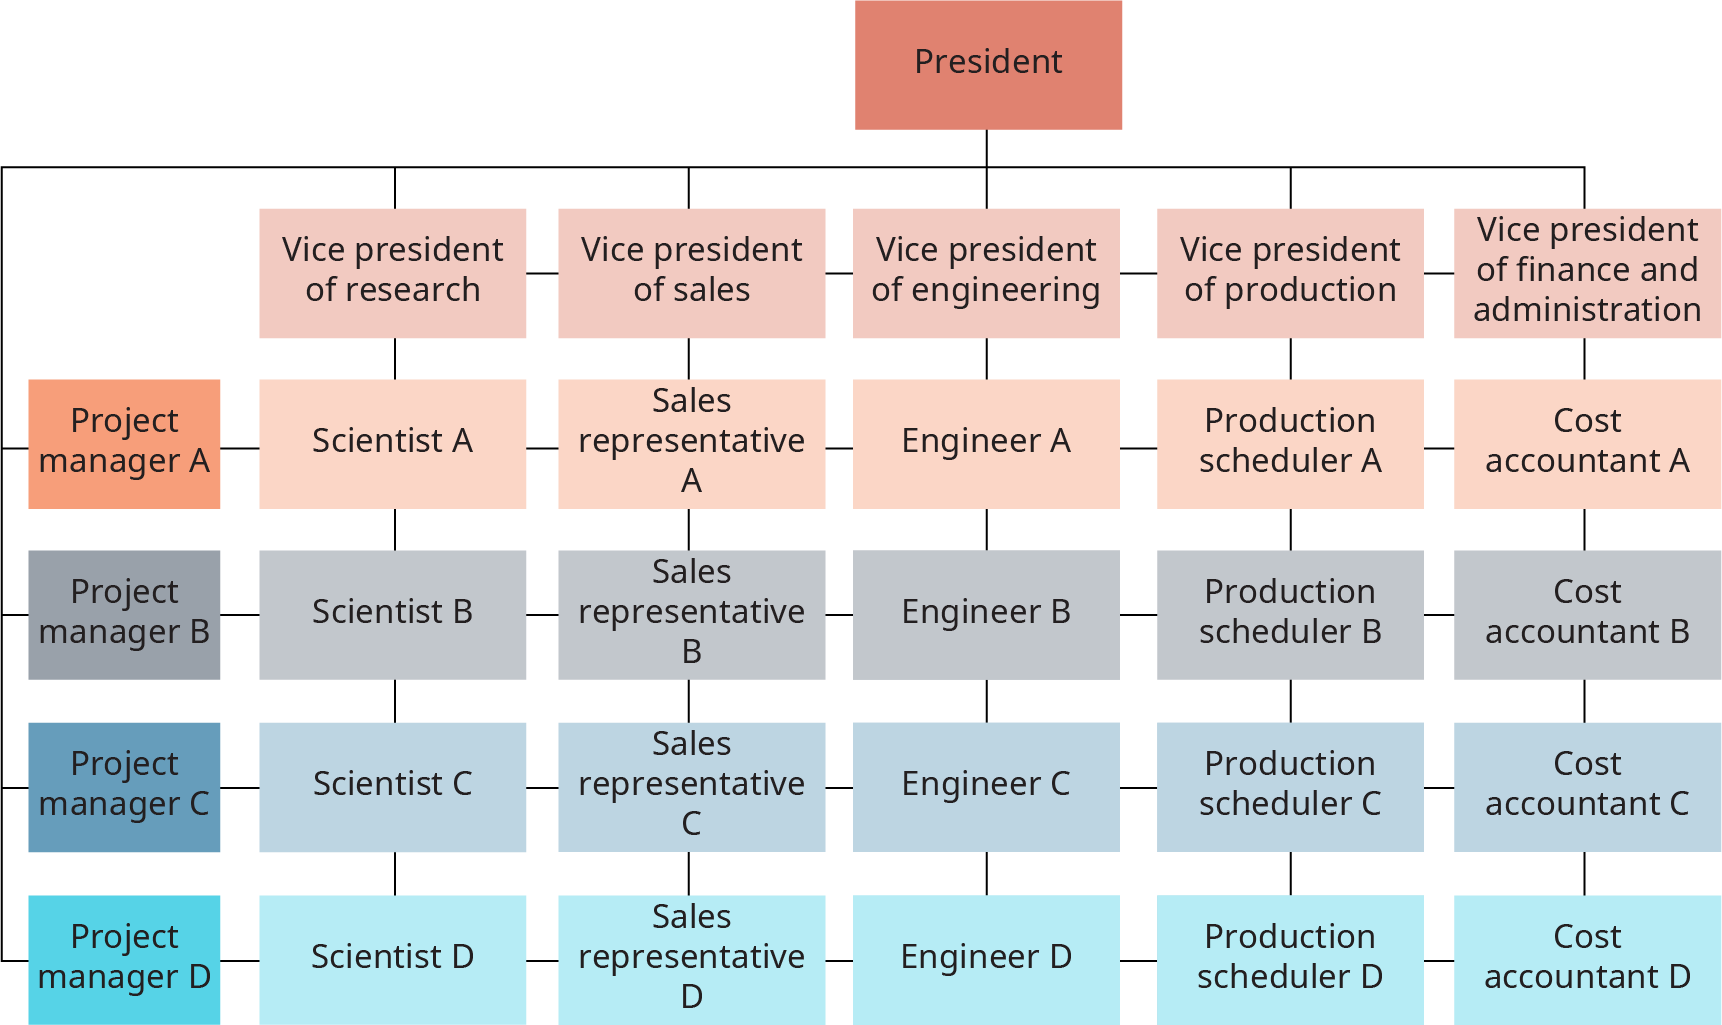 The matrix is made up of 5 columns and 4 rows. At the top of the matrix is the president; the president has lines extending to each column and row. The rows, from top to bottom, are labeled, Project manager A and Project manager B, and Project manager C, and Project manager D. From left to right, the columns are labeled Vice president of research and Vice president of sales, and Vice president of engineering, and Vice president of production, and Vice president of finance and administration. From left to right, the cells in the first row read, Scientist A, and Sales Representative A, and Engineer A, and Production Scheduler A, and Cost accountant A. Each row has this same construction, with scientist under v p of research; and sales rep under v p of sales, and engineer under v p of engineering, and production scheduler under v p of production, and cost accountant under v p of finance and admin.